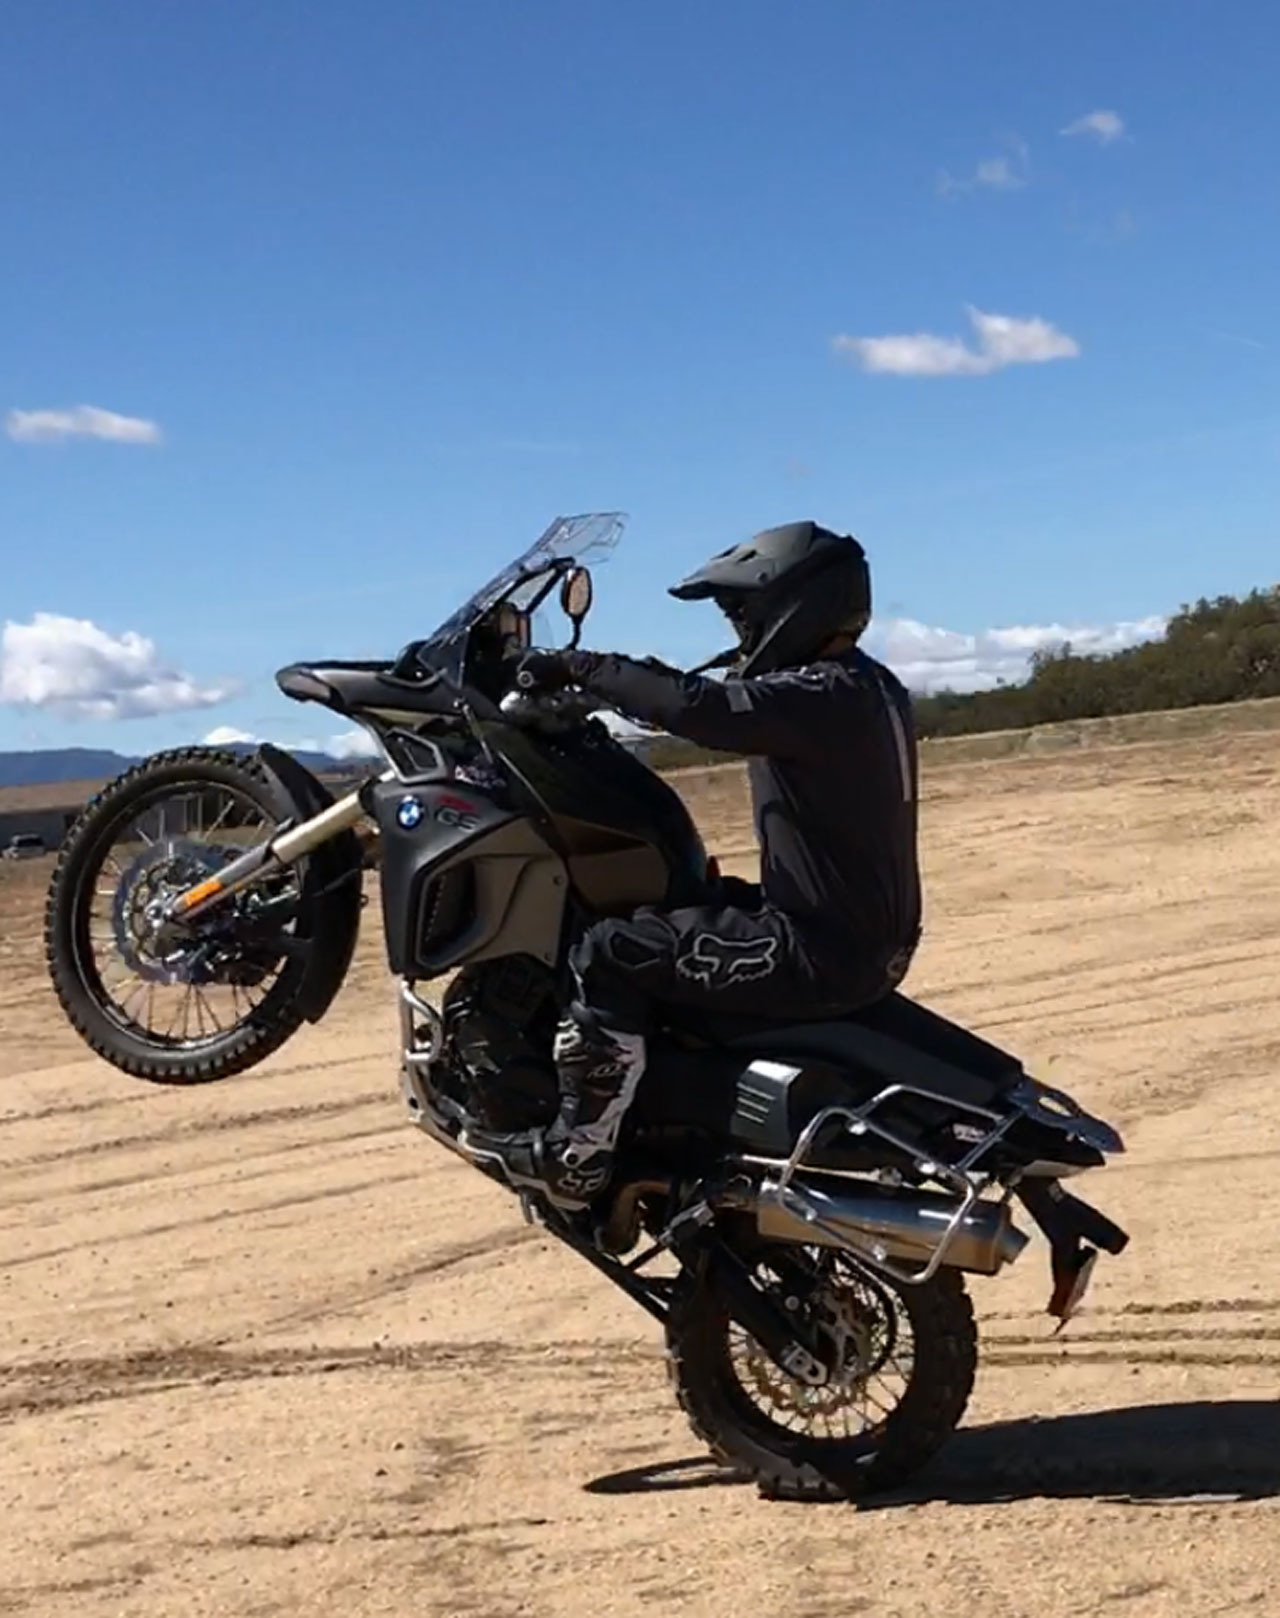 Motorcycle Wheelie on a BMW GS800